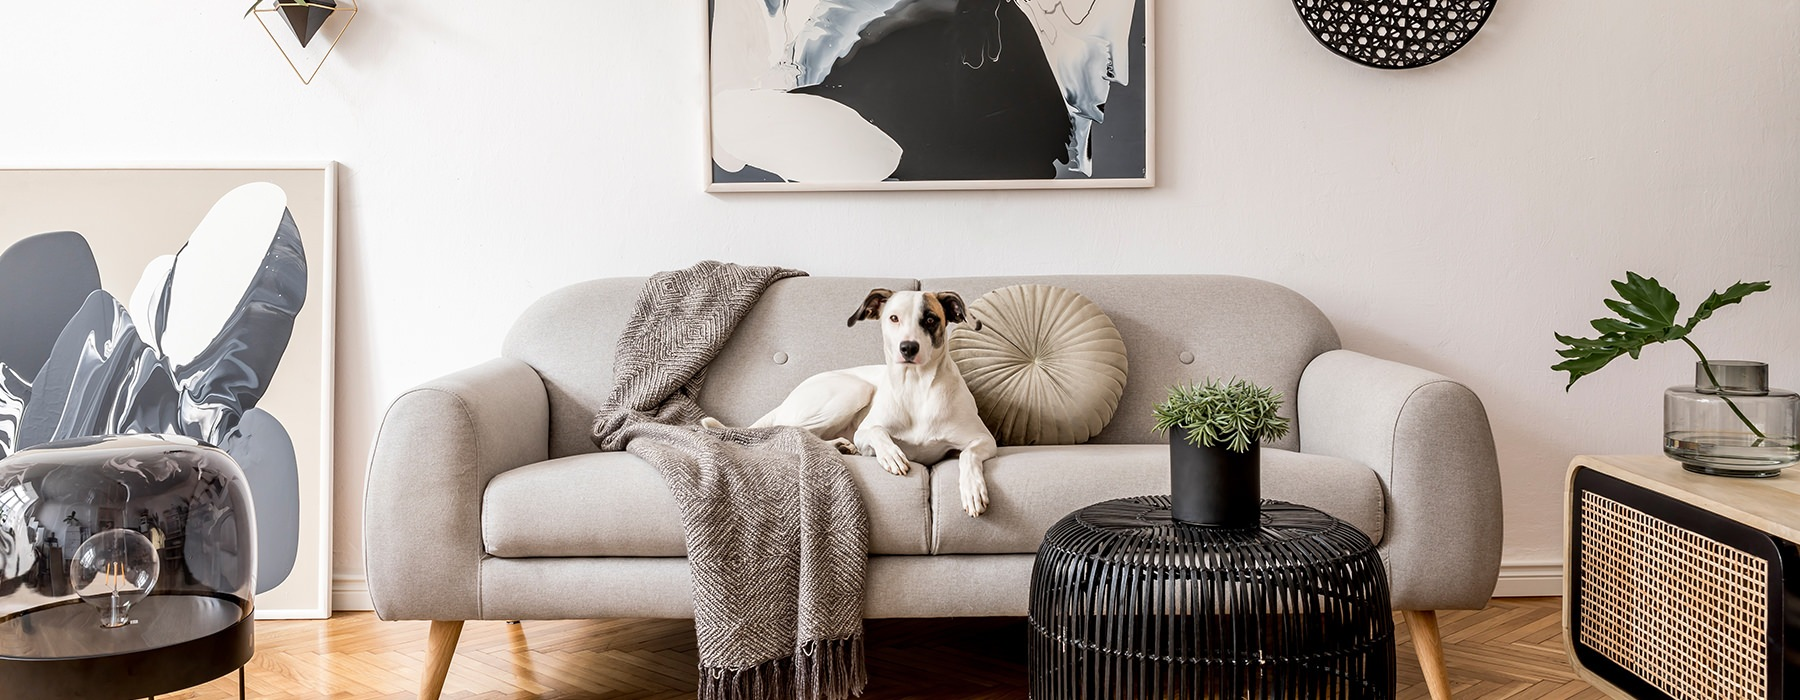 Dog sitting on a couch in a living room